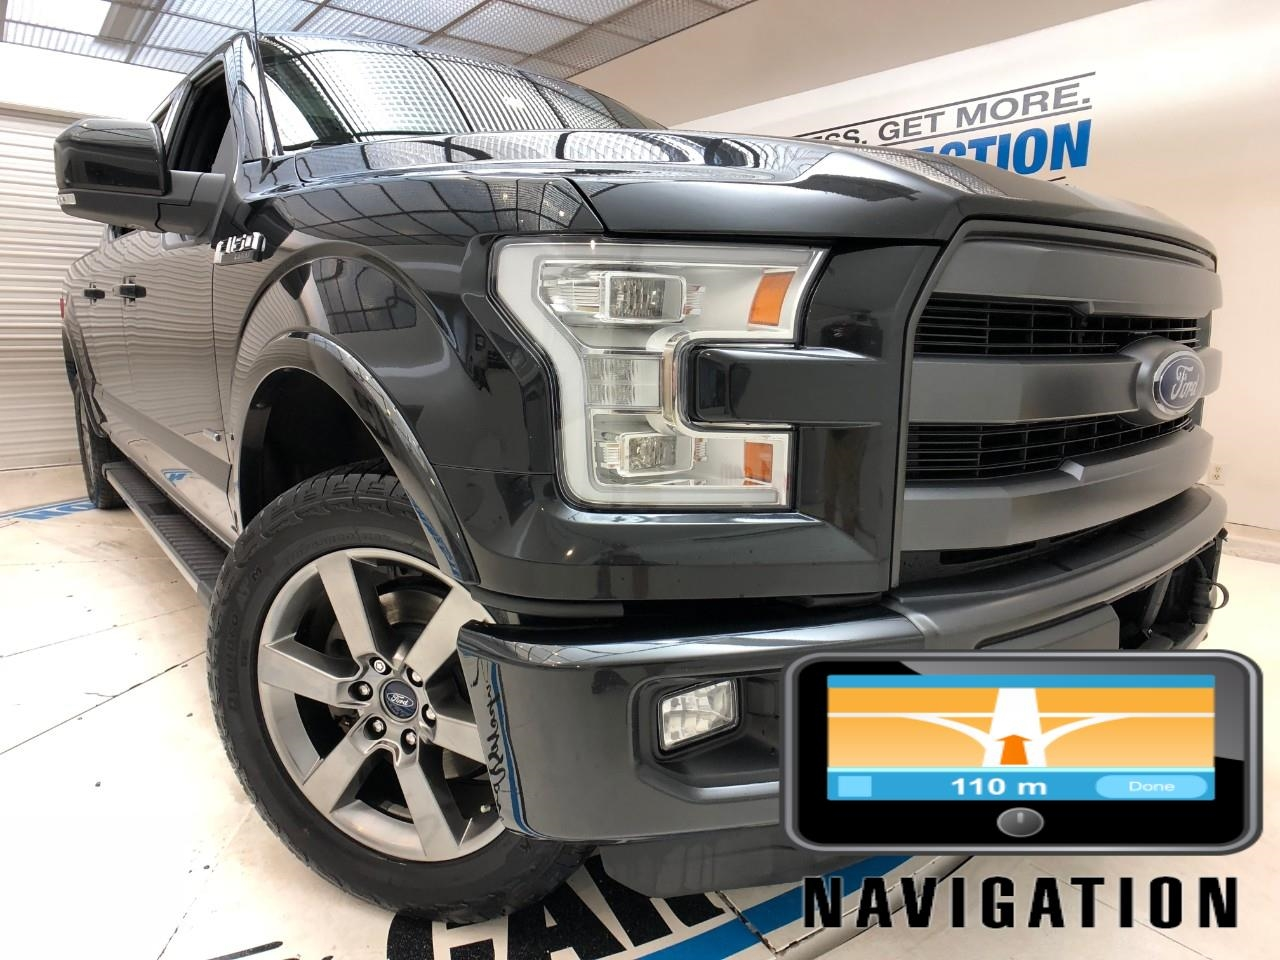 Pre-Owned 2015 Ford F-150 4WD CREW FX4 LARIAT, LOADED, NAVIGATION, PANORAMIC ROOF, HEATED/COOLED SEATS, ECOBOOST!!